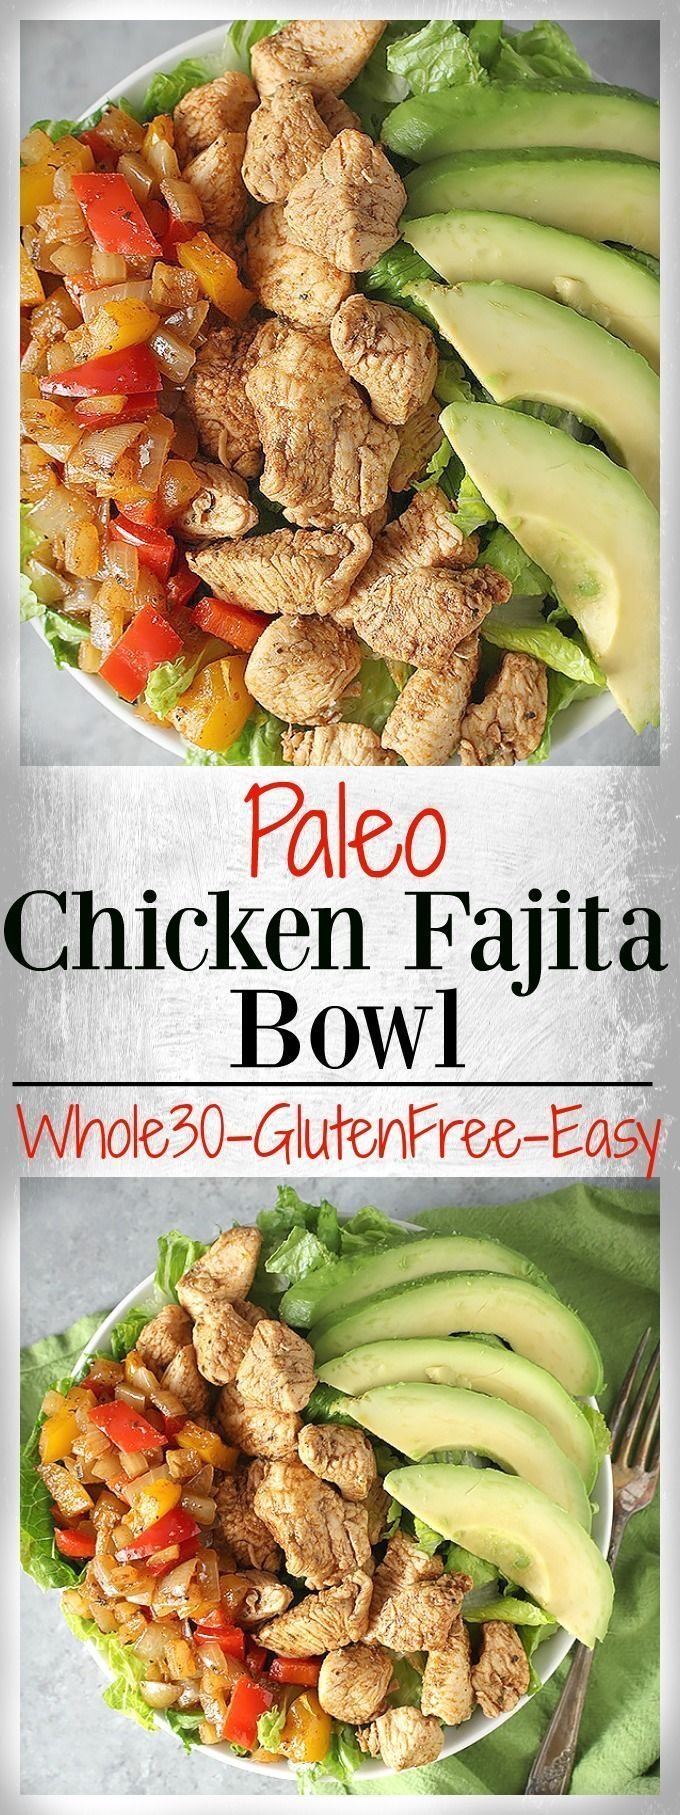 Paleo Chicken Fajita Bowl- an easy, healthy, complete meal in a bowl. Packed with juicy chicken and veggies. Whole30, gluten free, and dairy free.